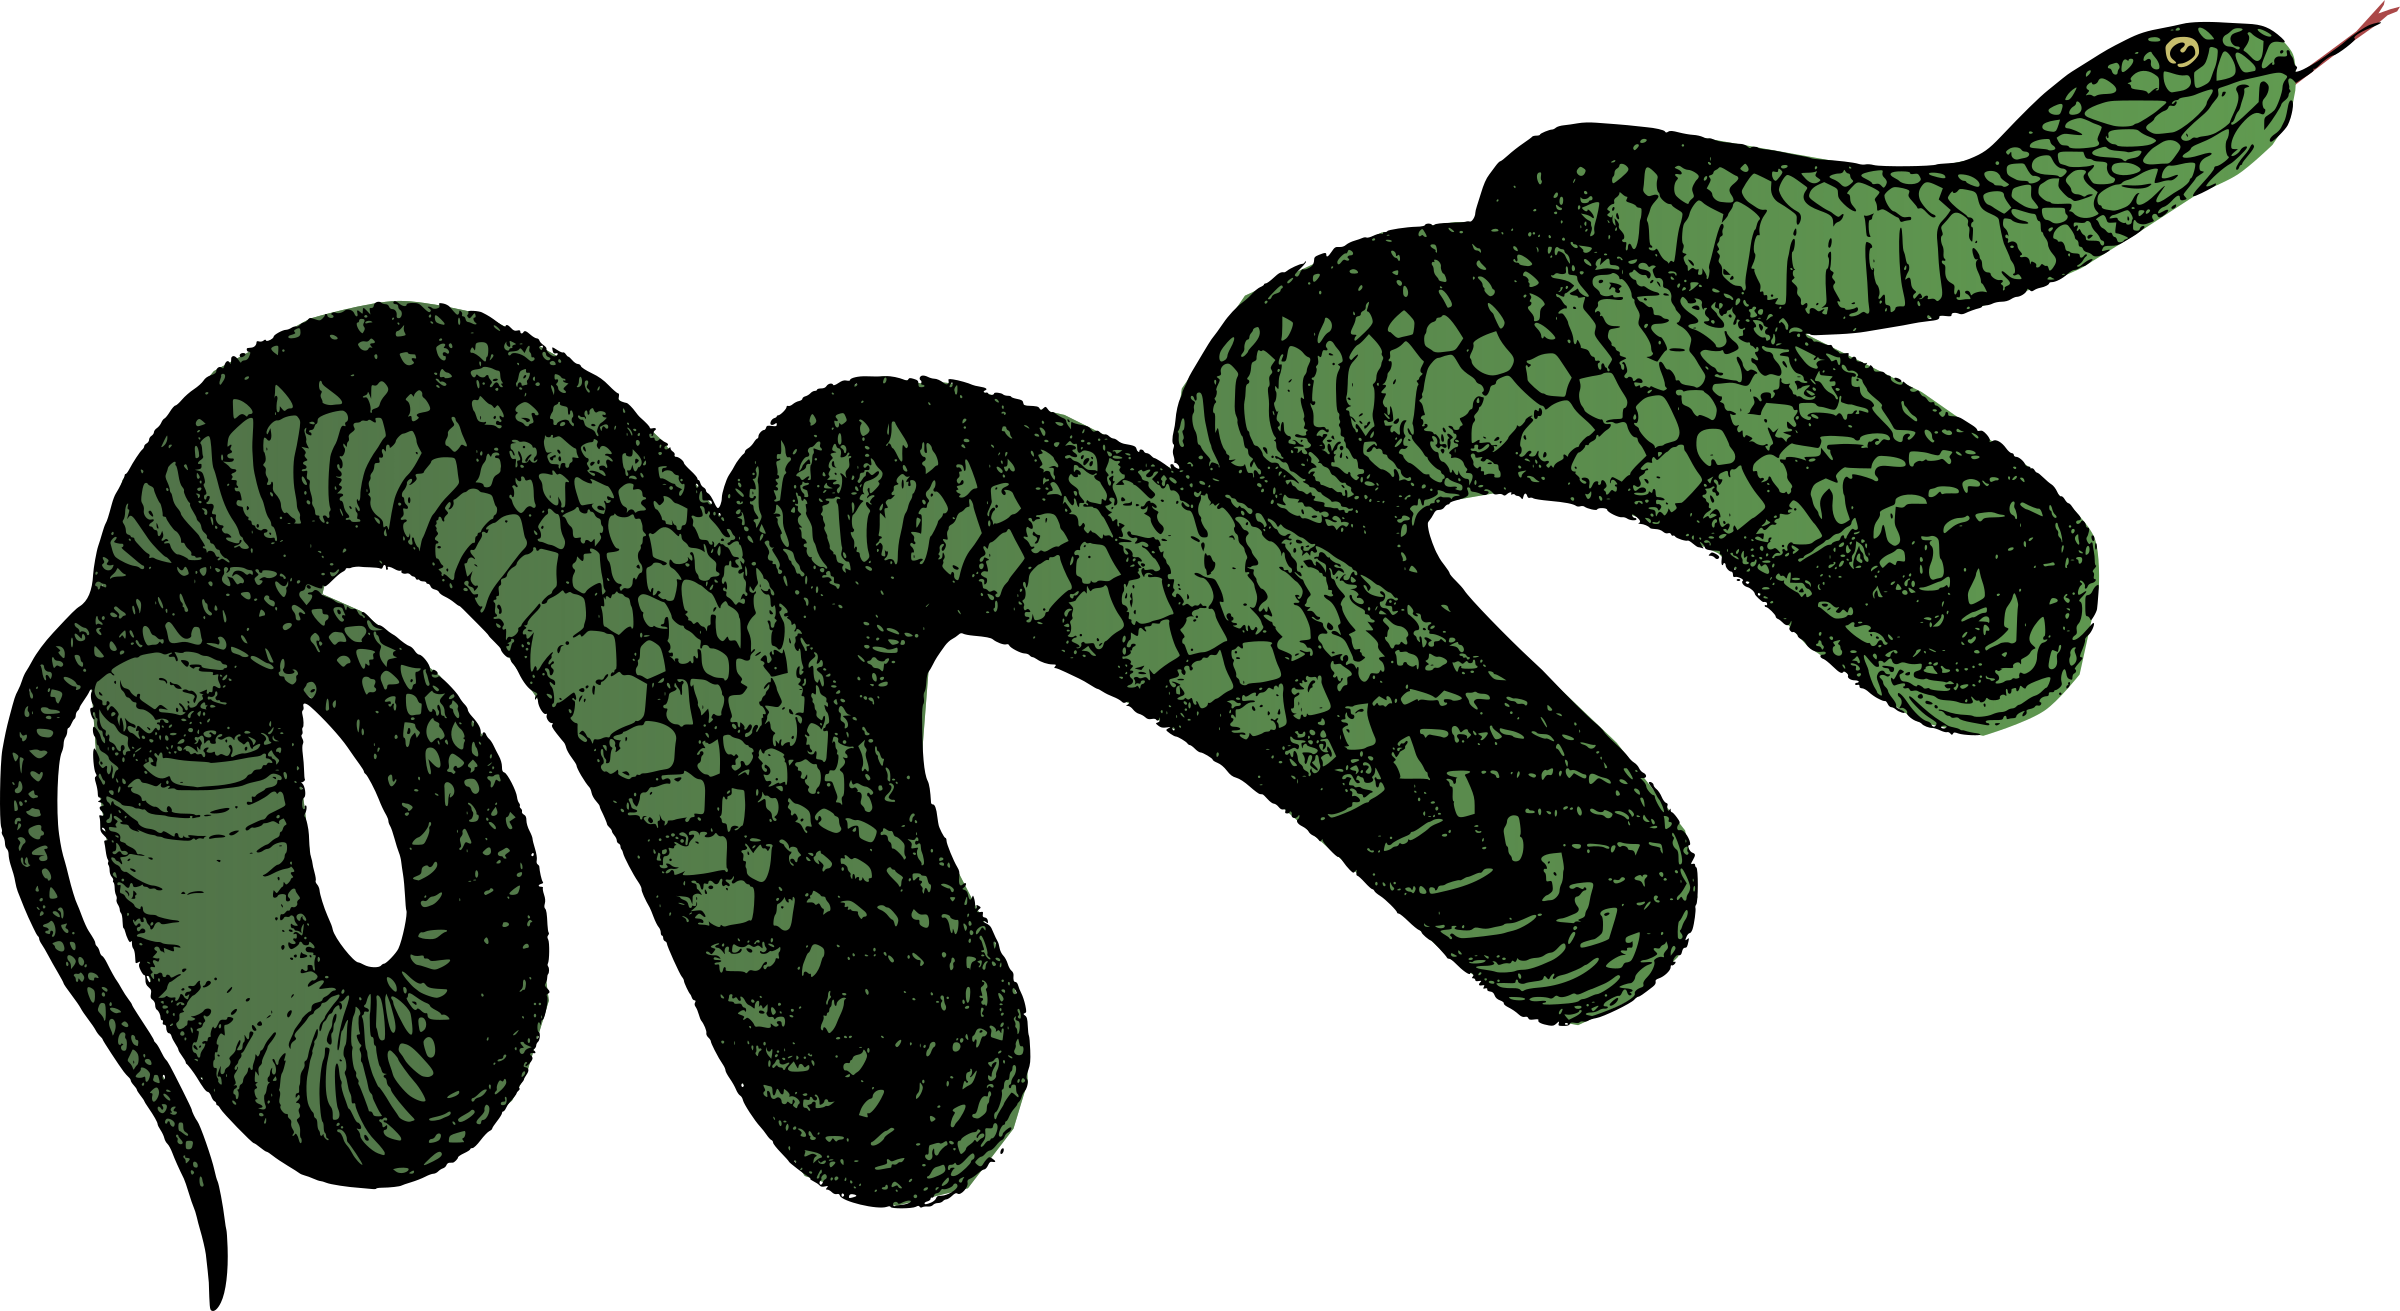 Coiled Snake - Colour by j4p4n